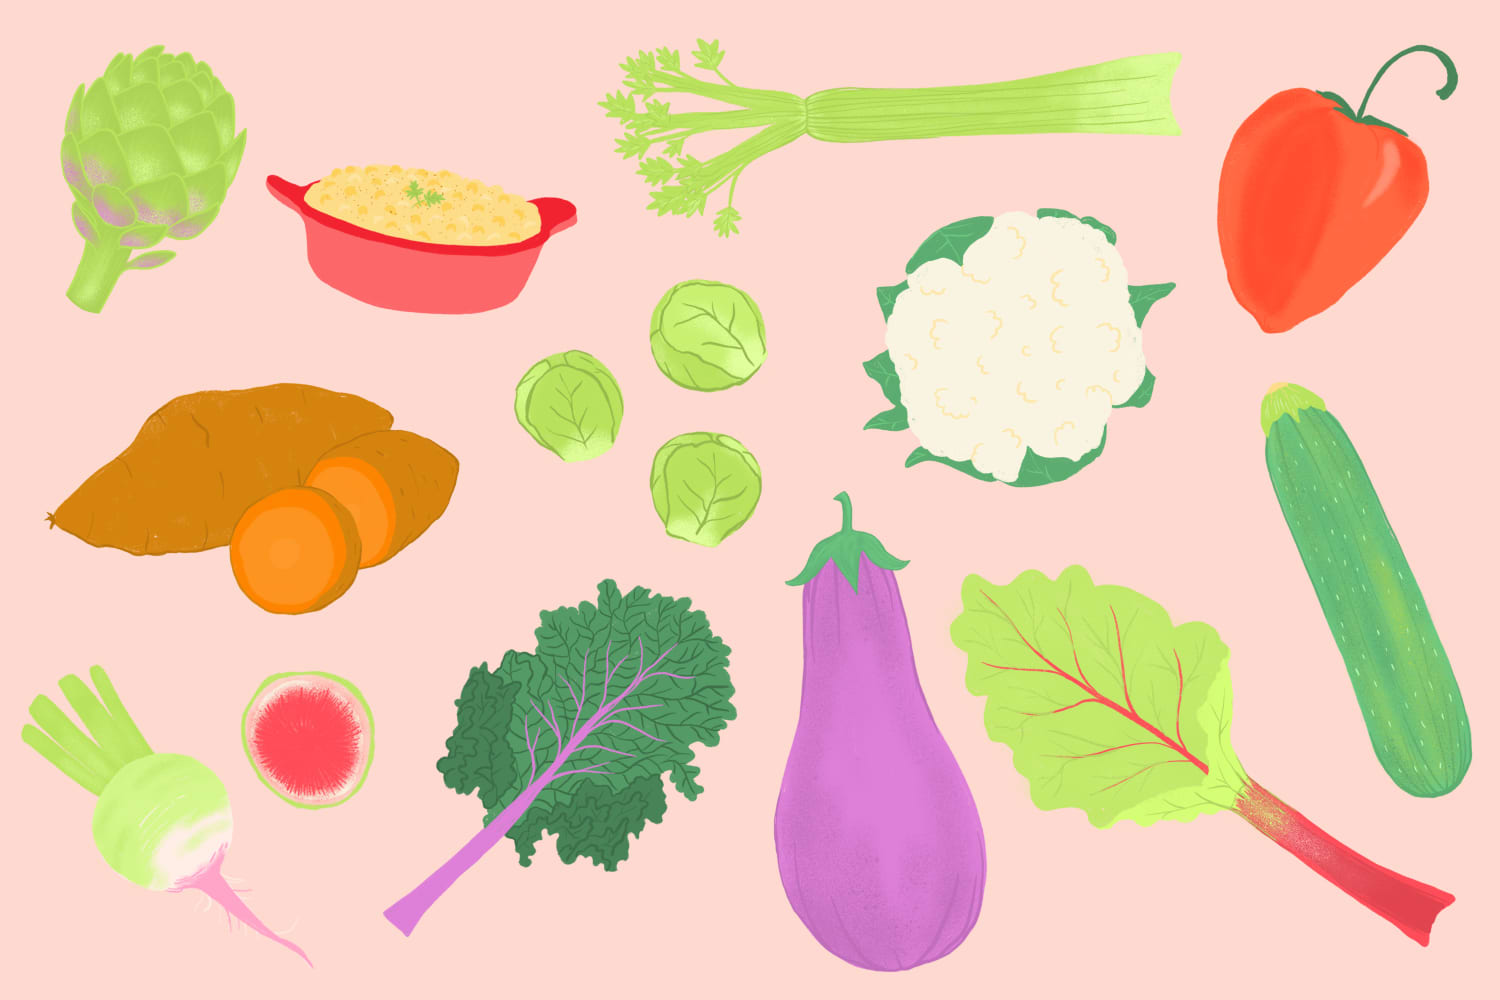 Here's Your Vegetable Soul Mate Based on Your Zodiac Sign